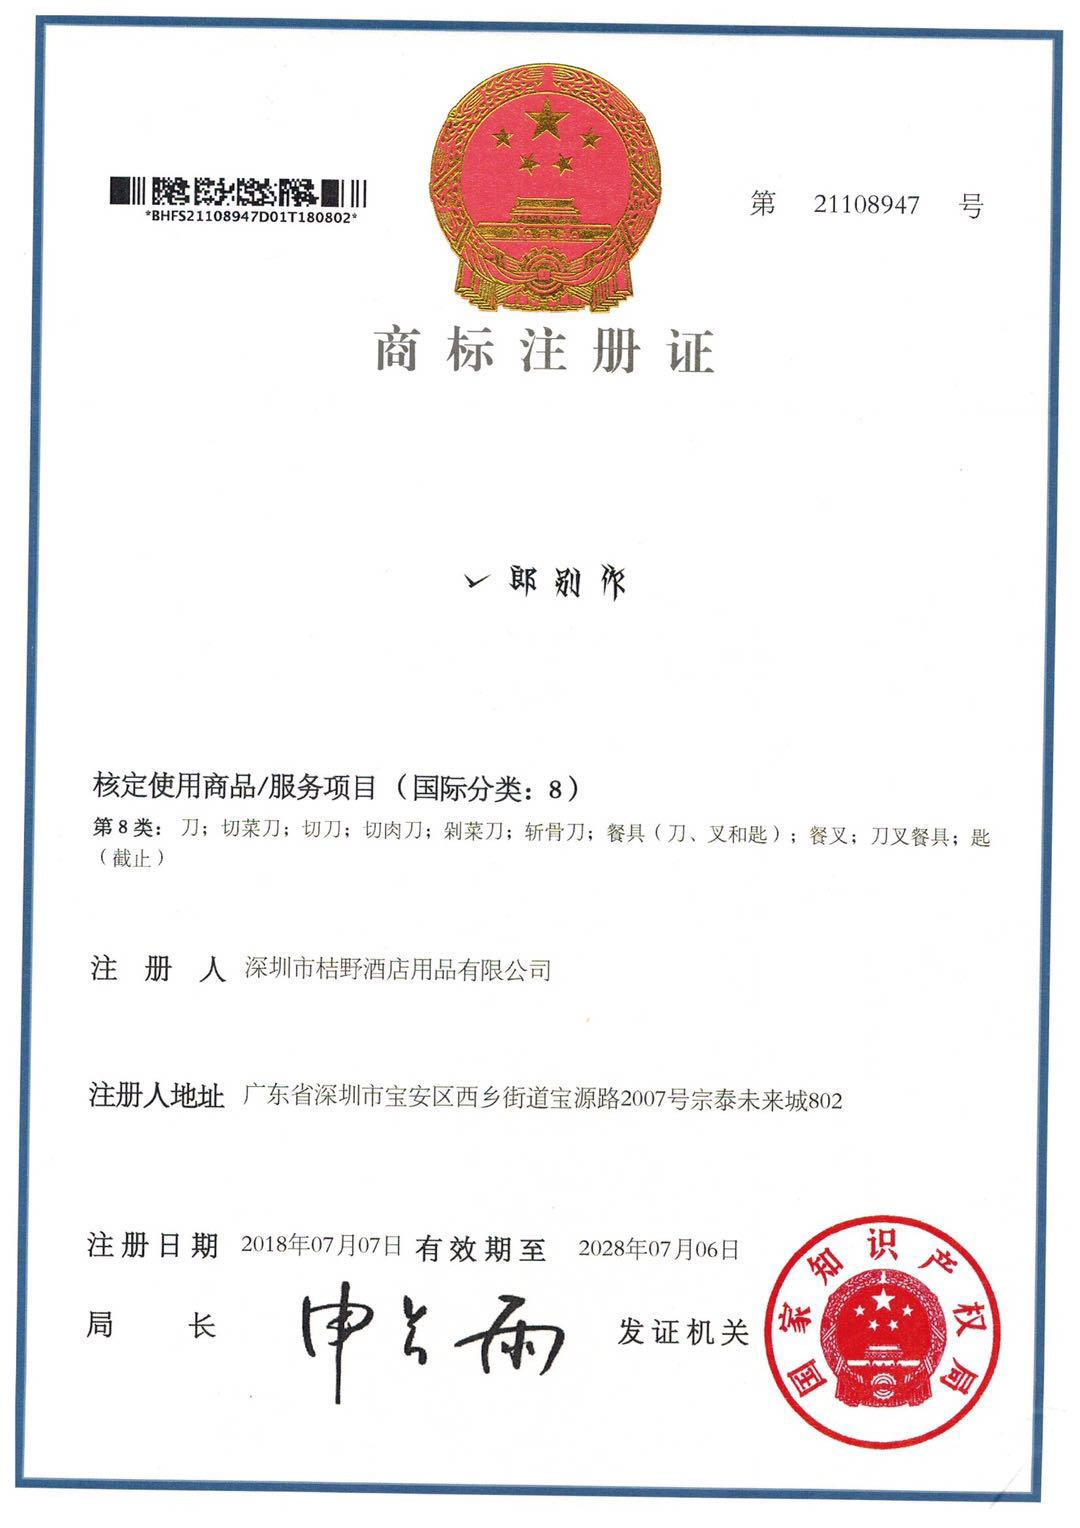 Yilangbiezuo as a registered trademark